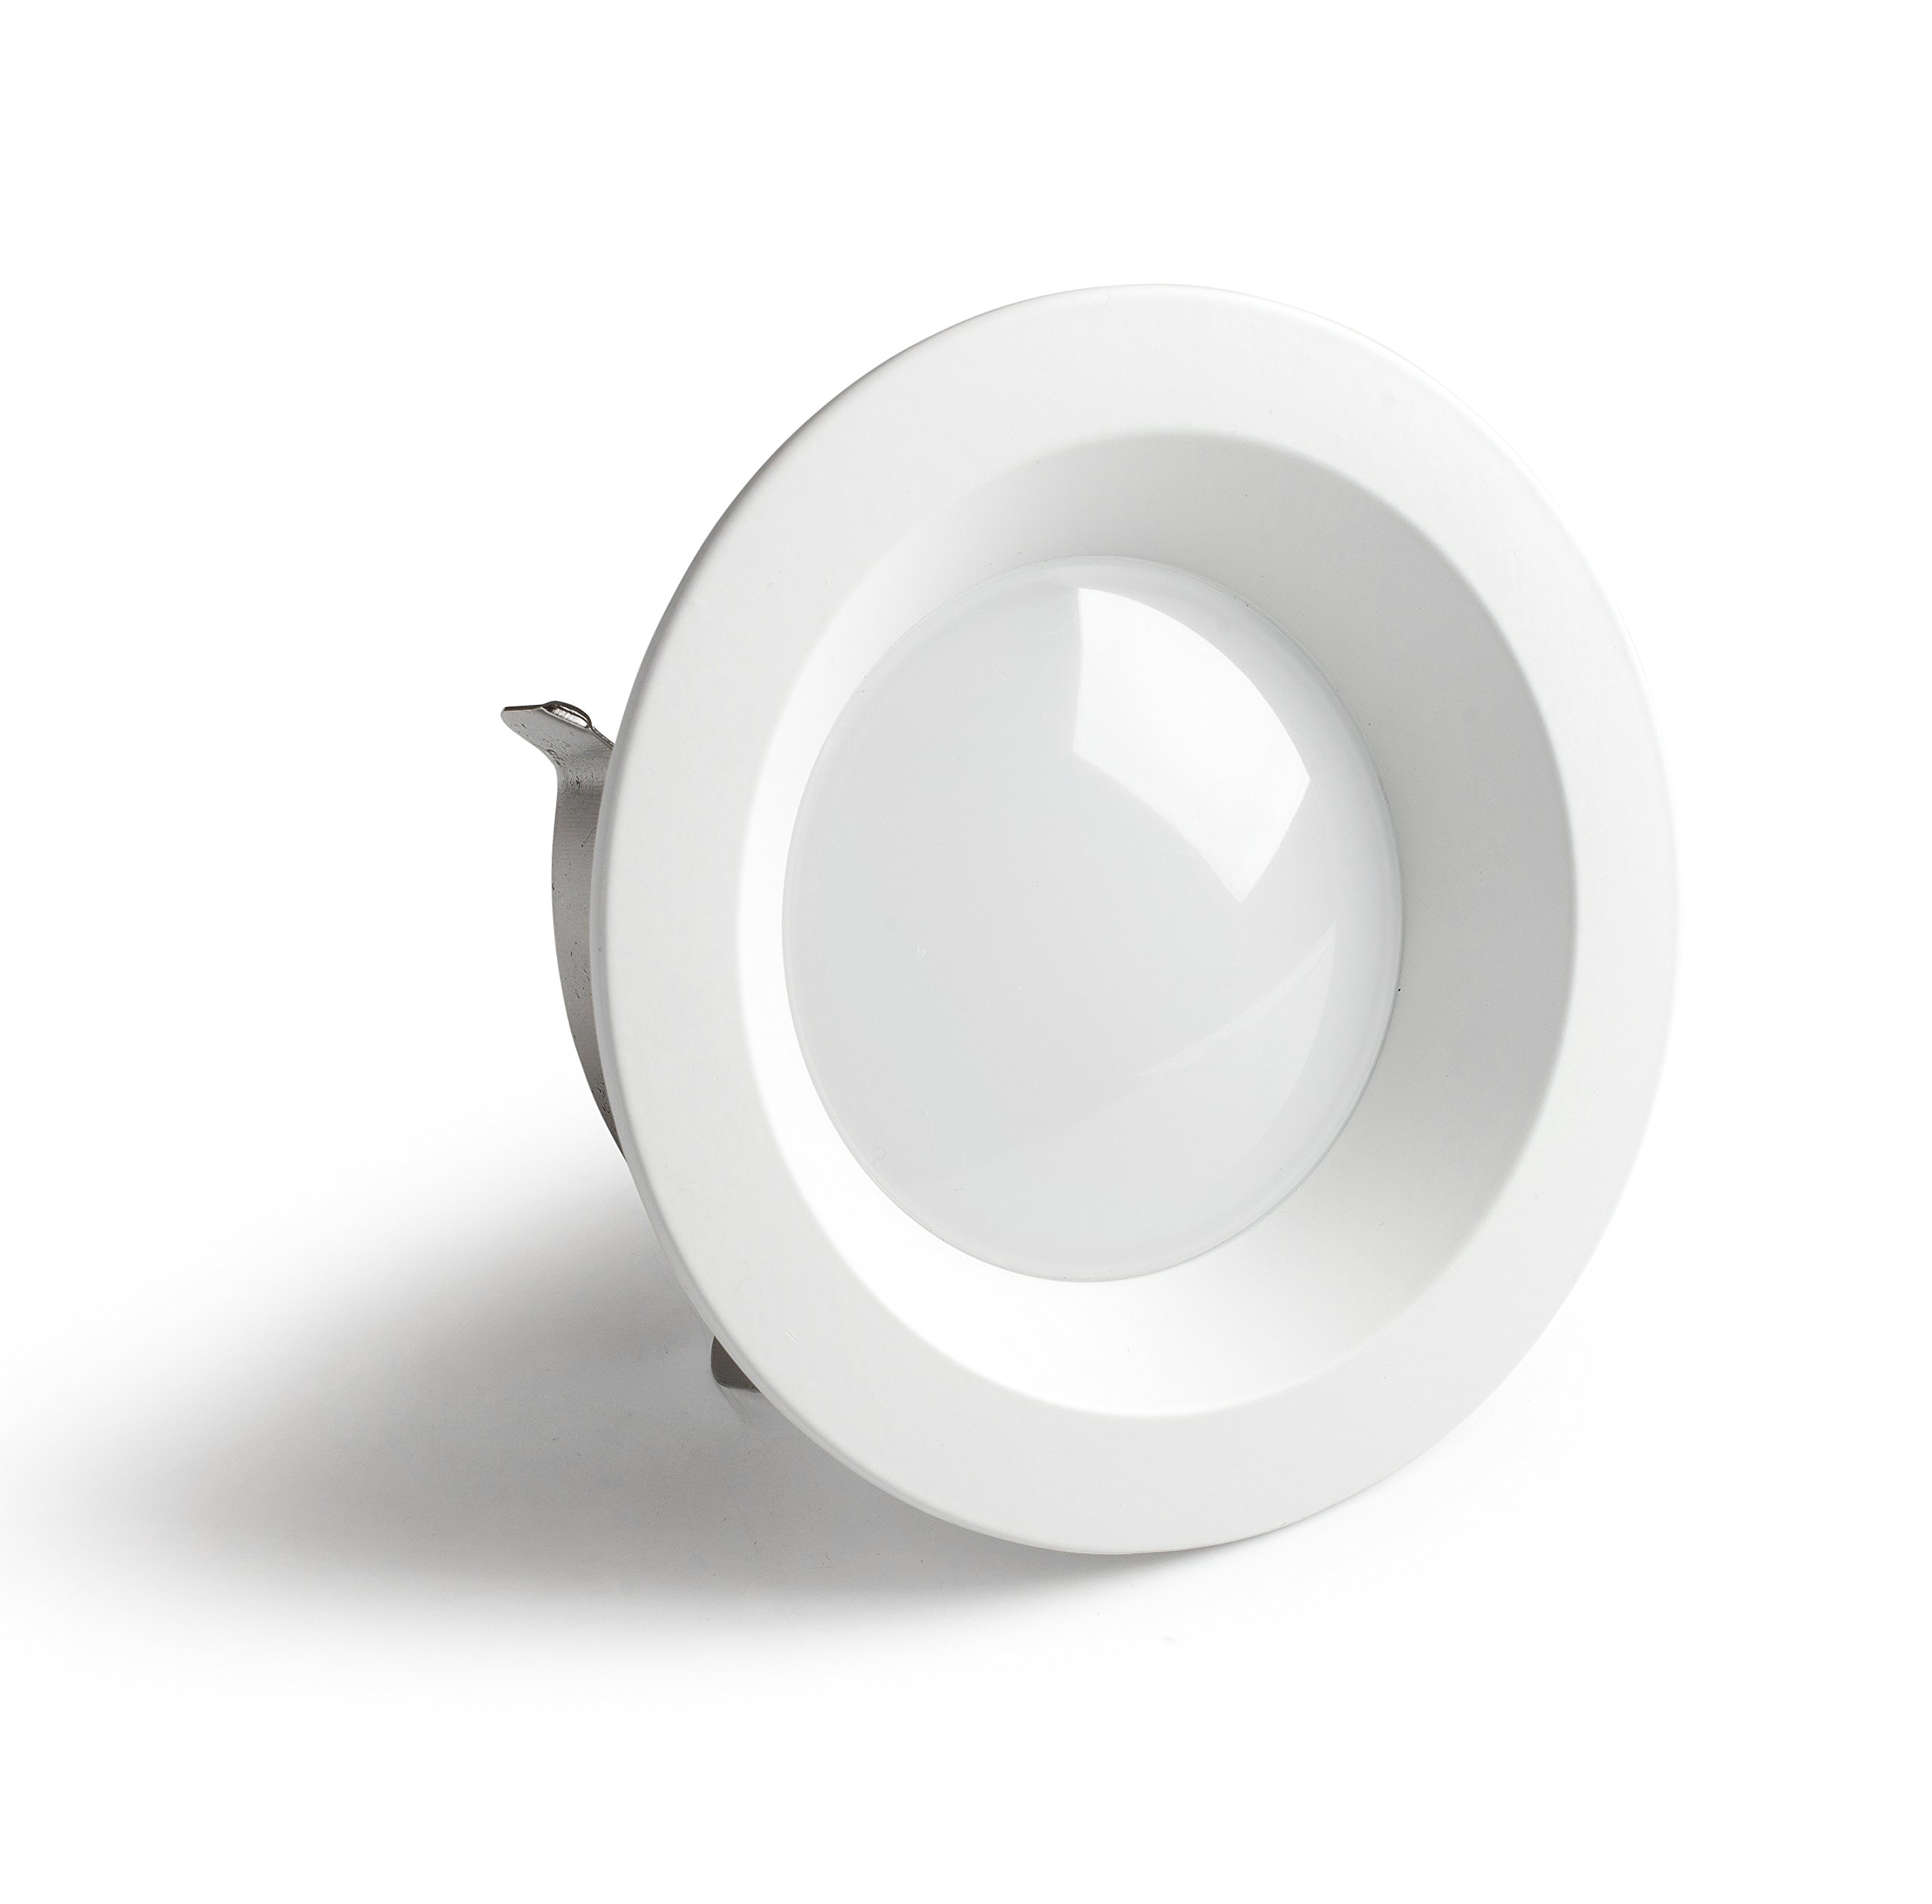 LED Recessed Retrofit Downlight (4 Inch) Indoor Ceiling Lighting for Kitchens, Bathrooms, Hallways | Small, Circle Base 1150 Lumens | Available in 3000K and 4000K Clarity (3000K)